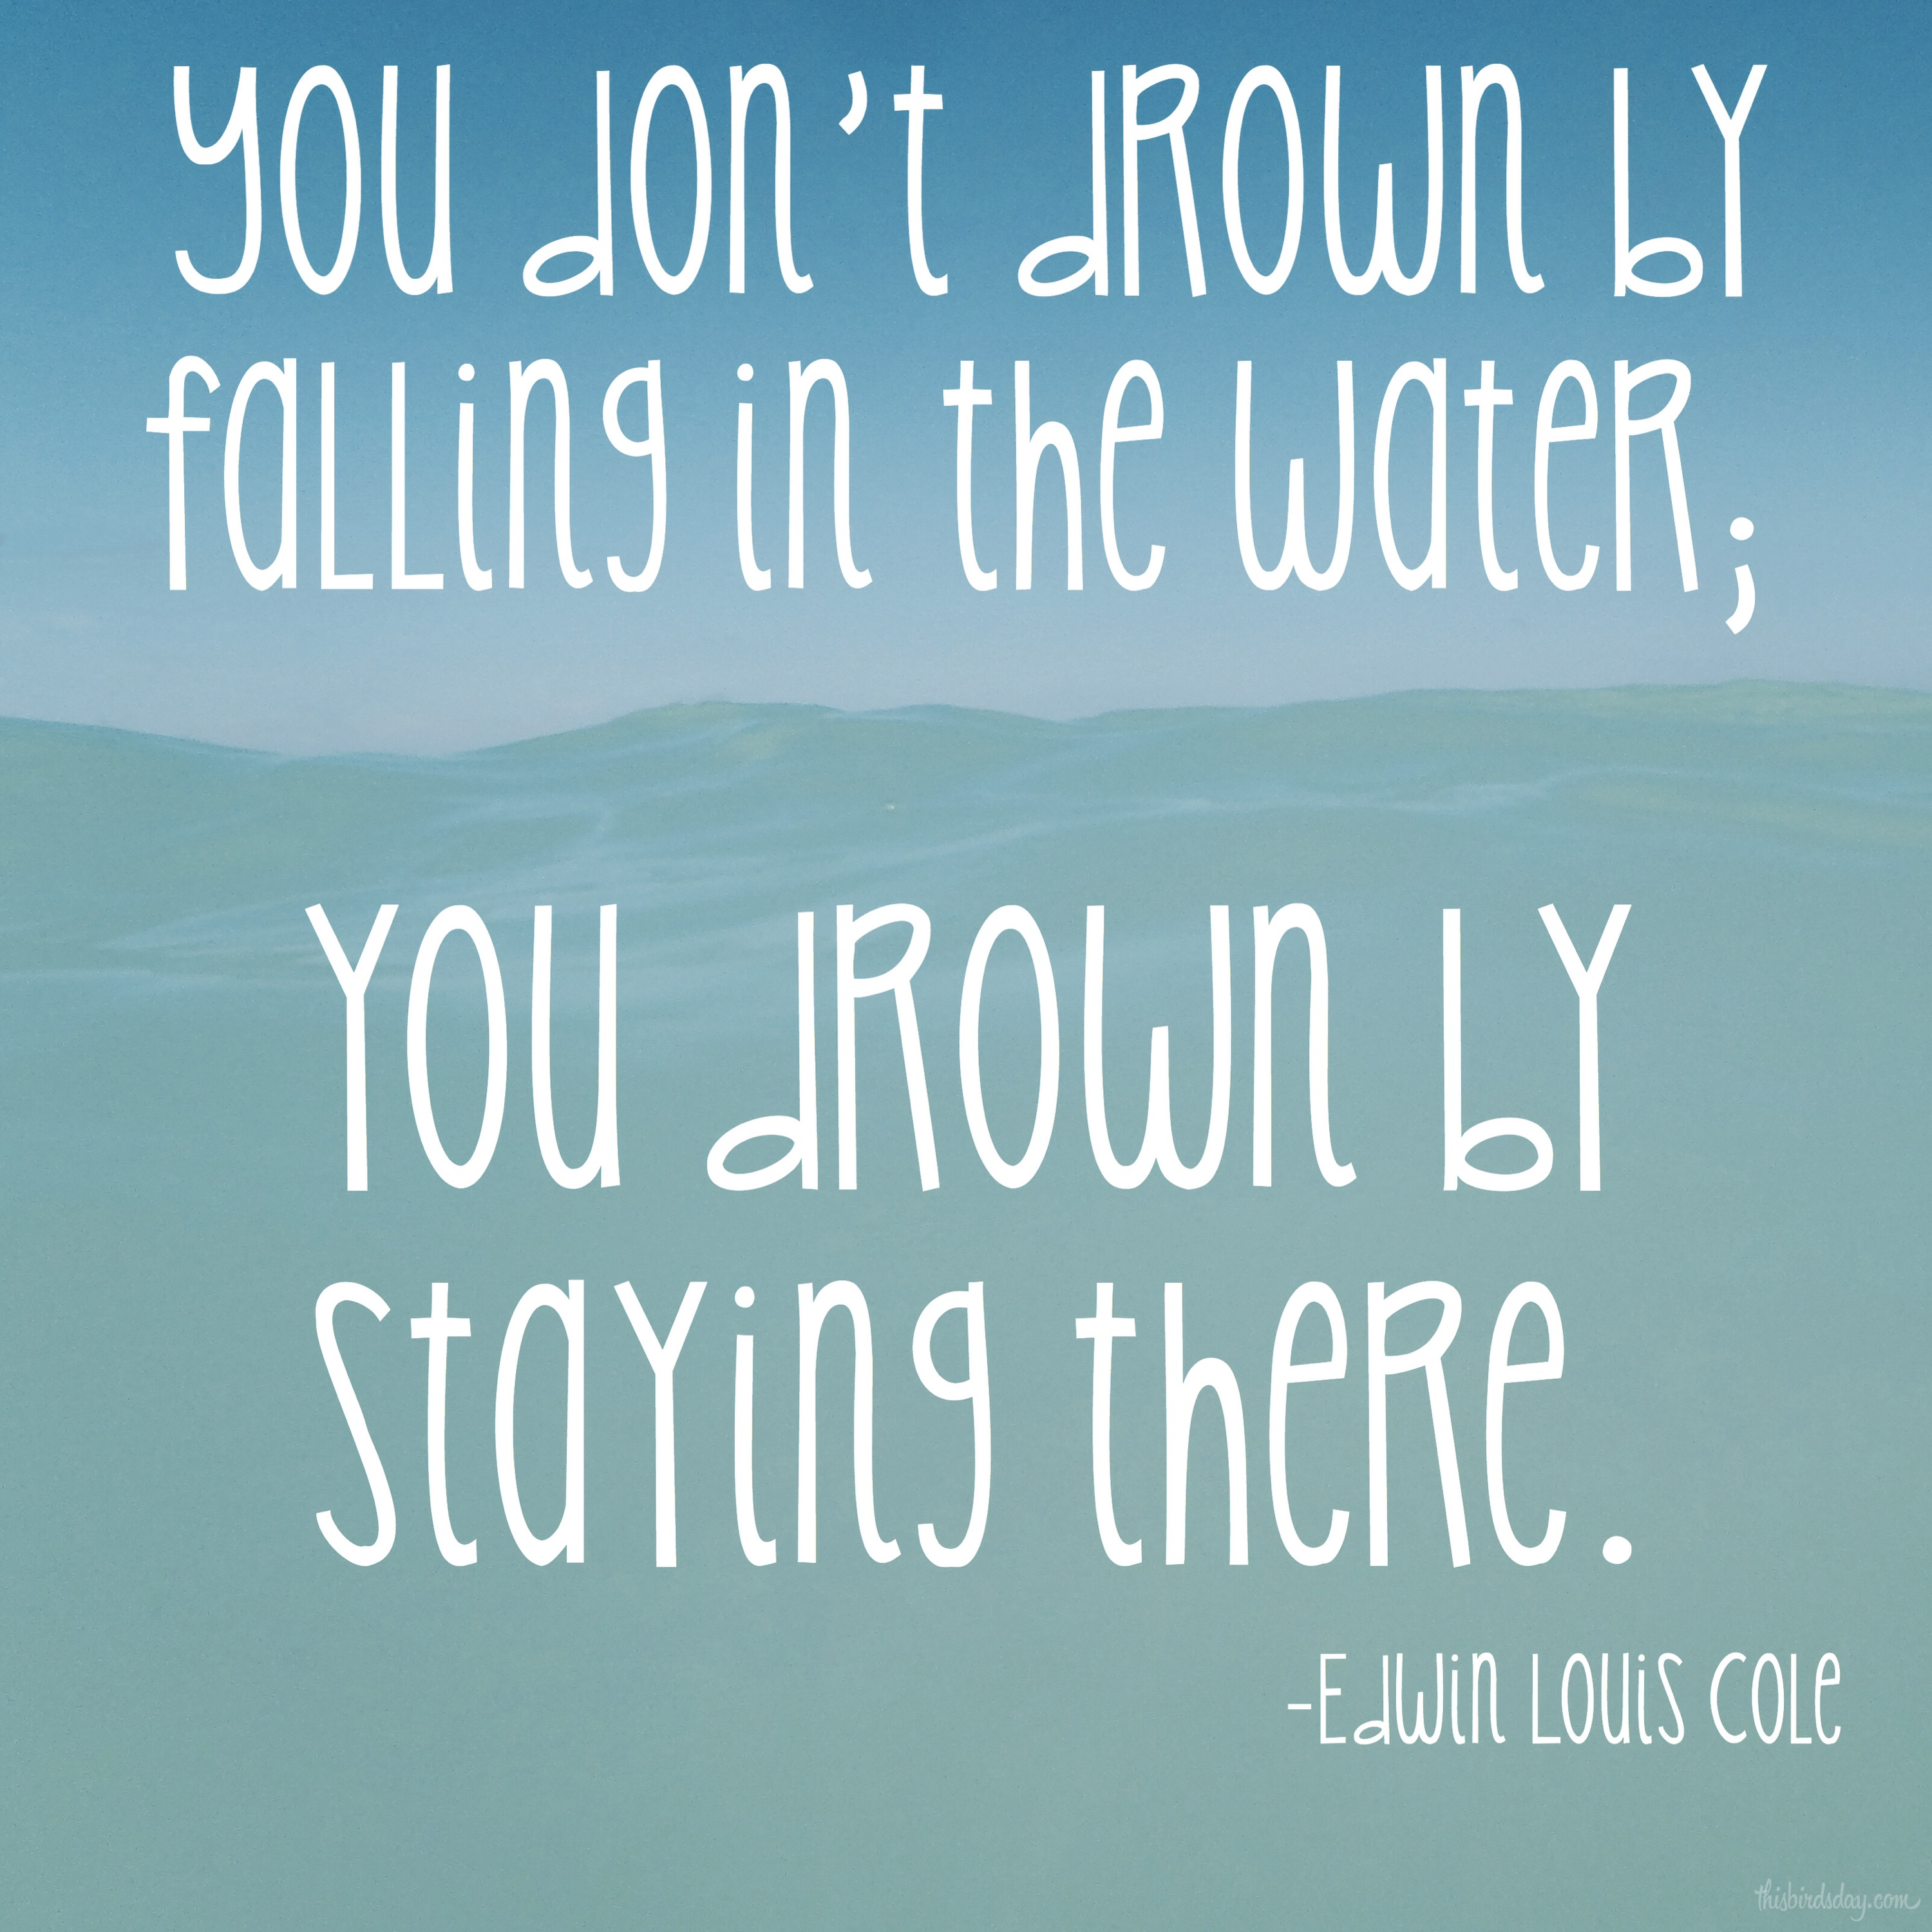 """You don't drown by falling in the water; you drown by staying there."" Edwin Louis Cole Photo copyright Sheri Landry"